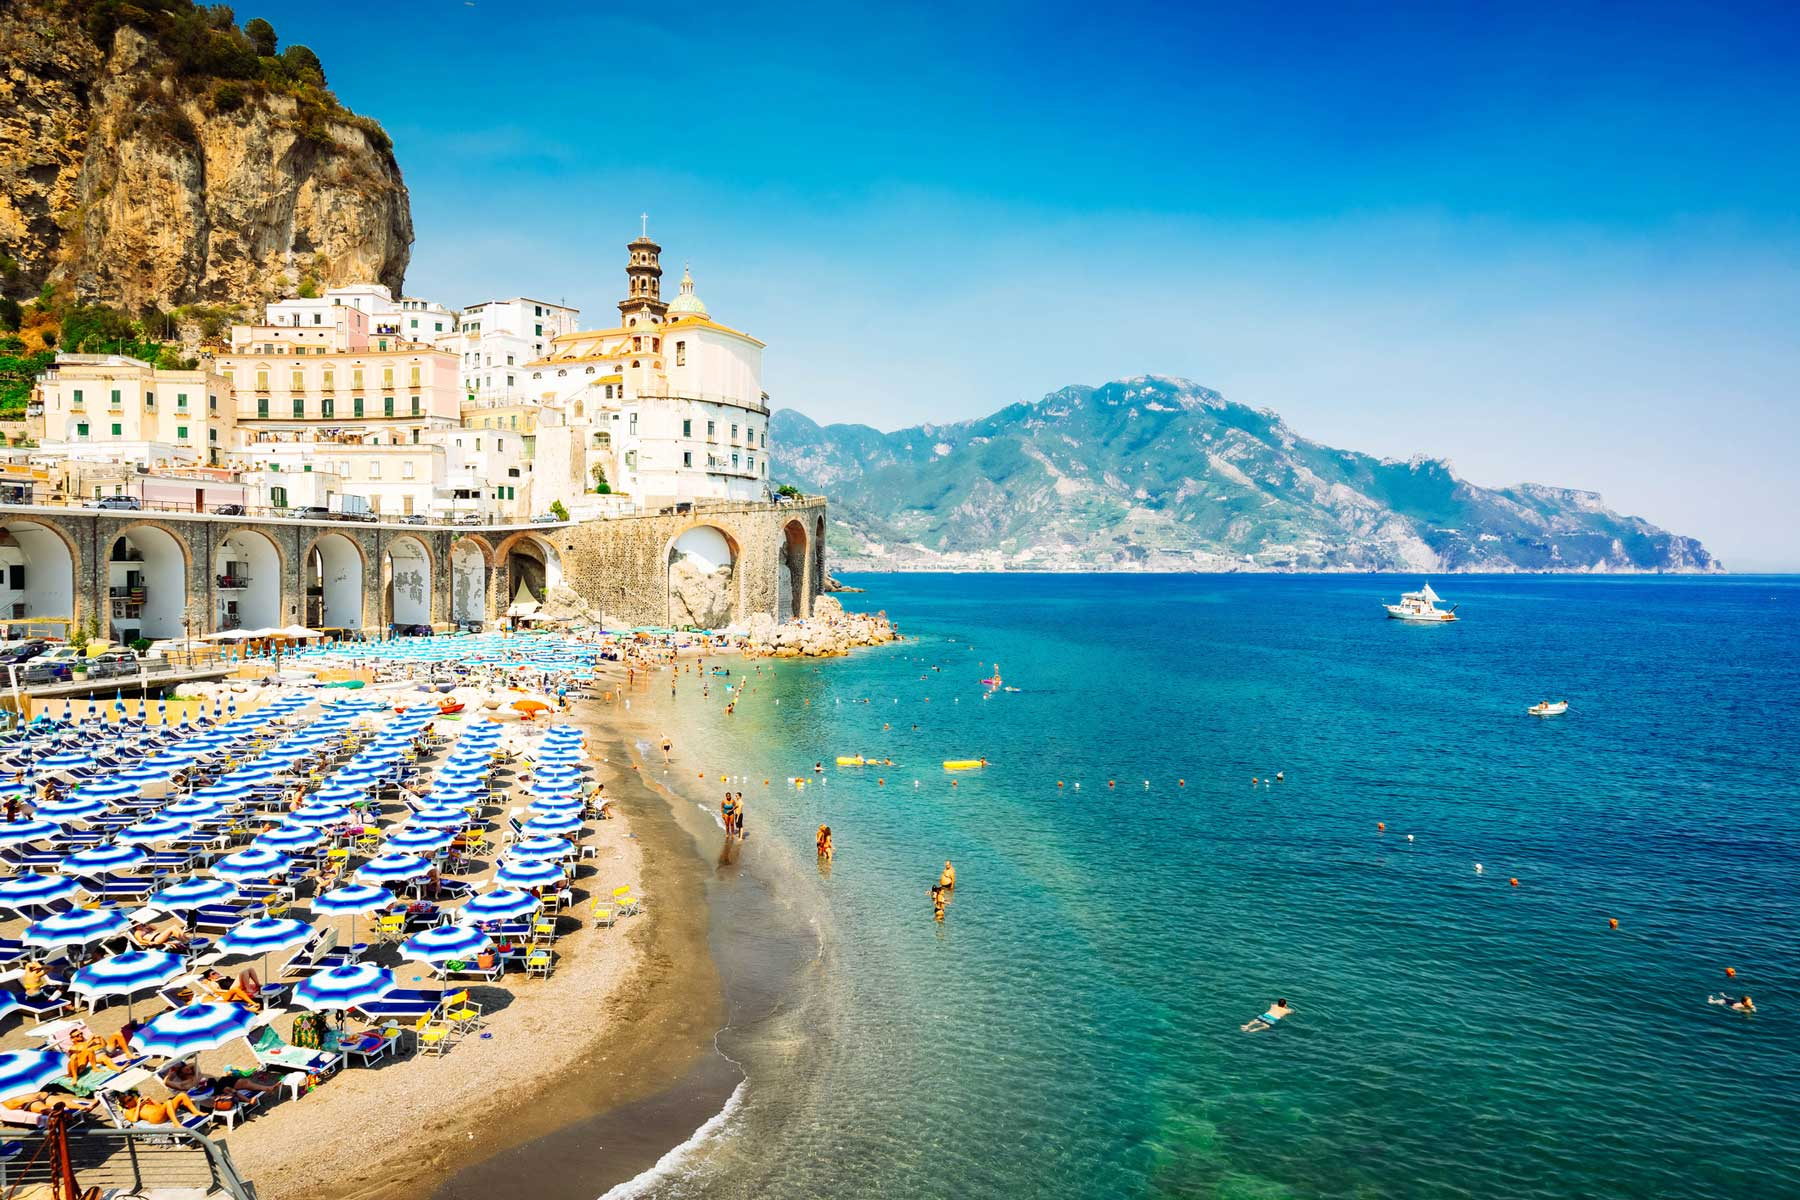 The Amalfi Coast in Italy with bright blue waters and the beach dotted with blue umbrellas.